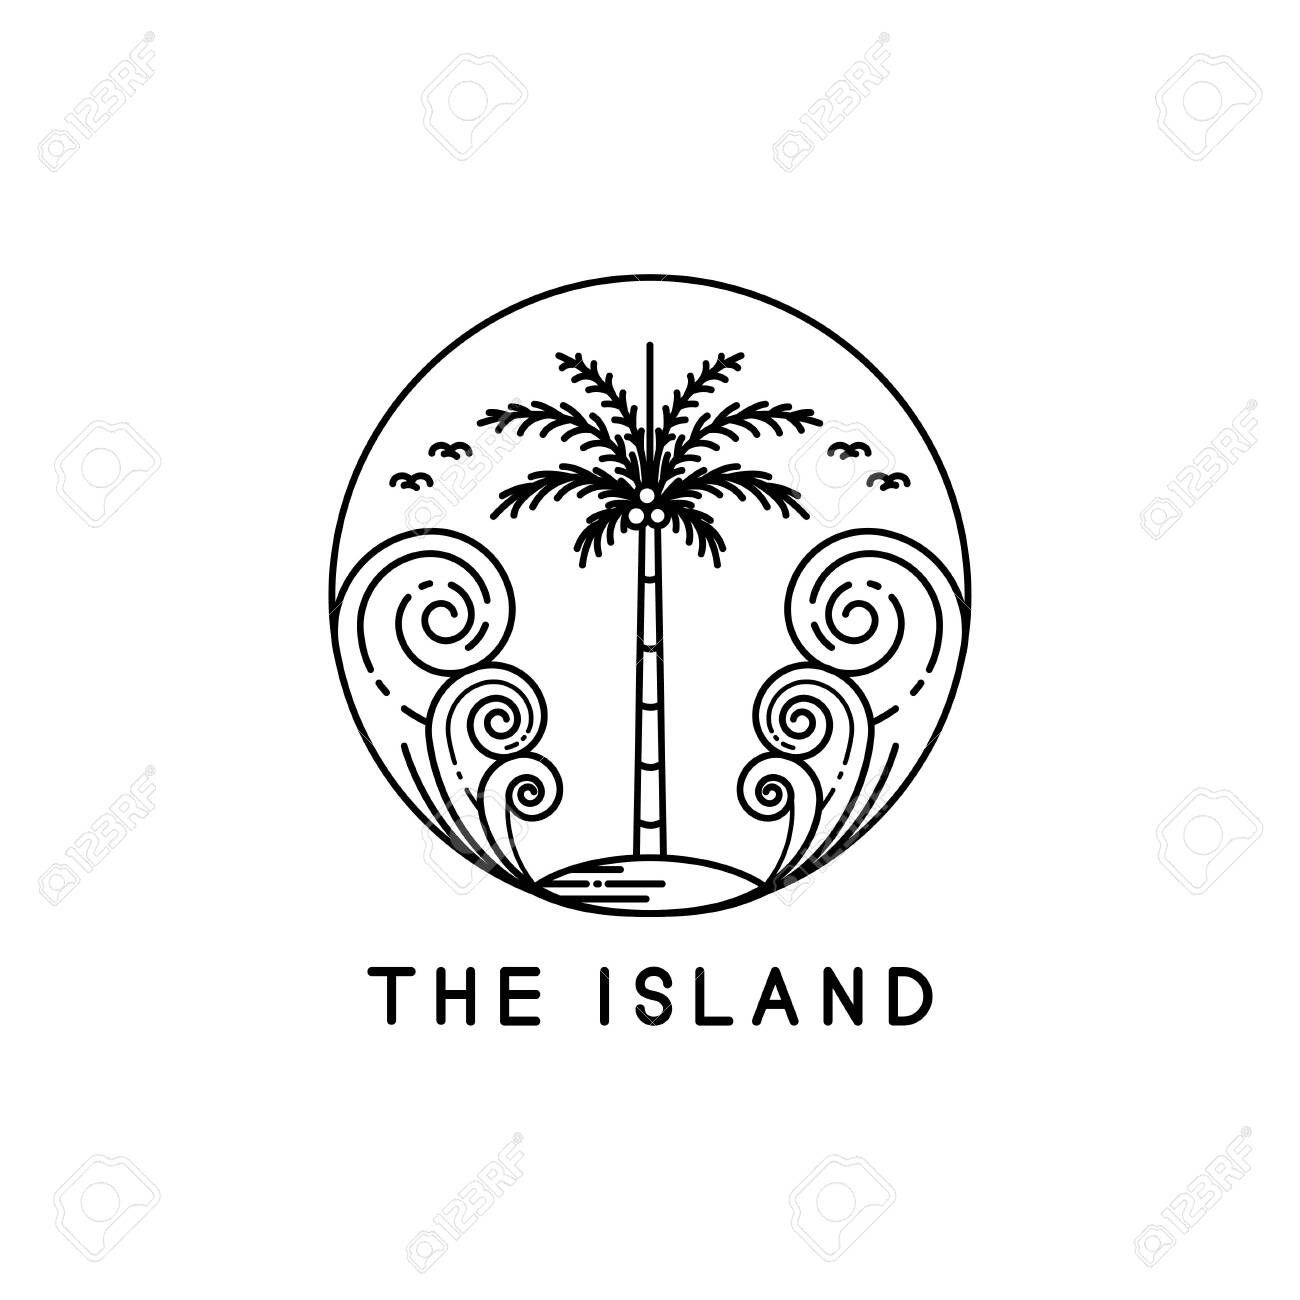 Palm Trees On Tropical Islands, Line Art Style Designs Royalty ...